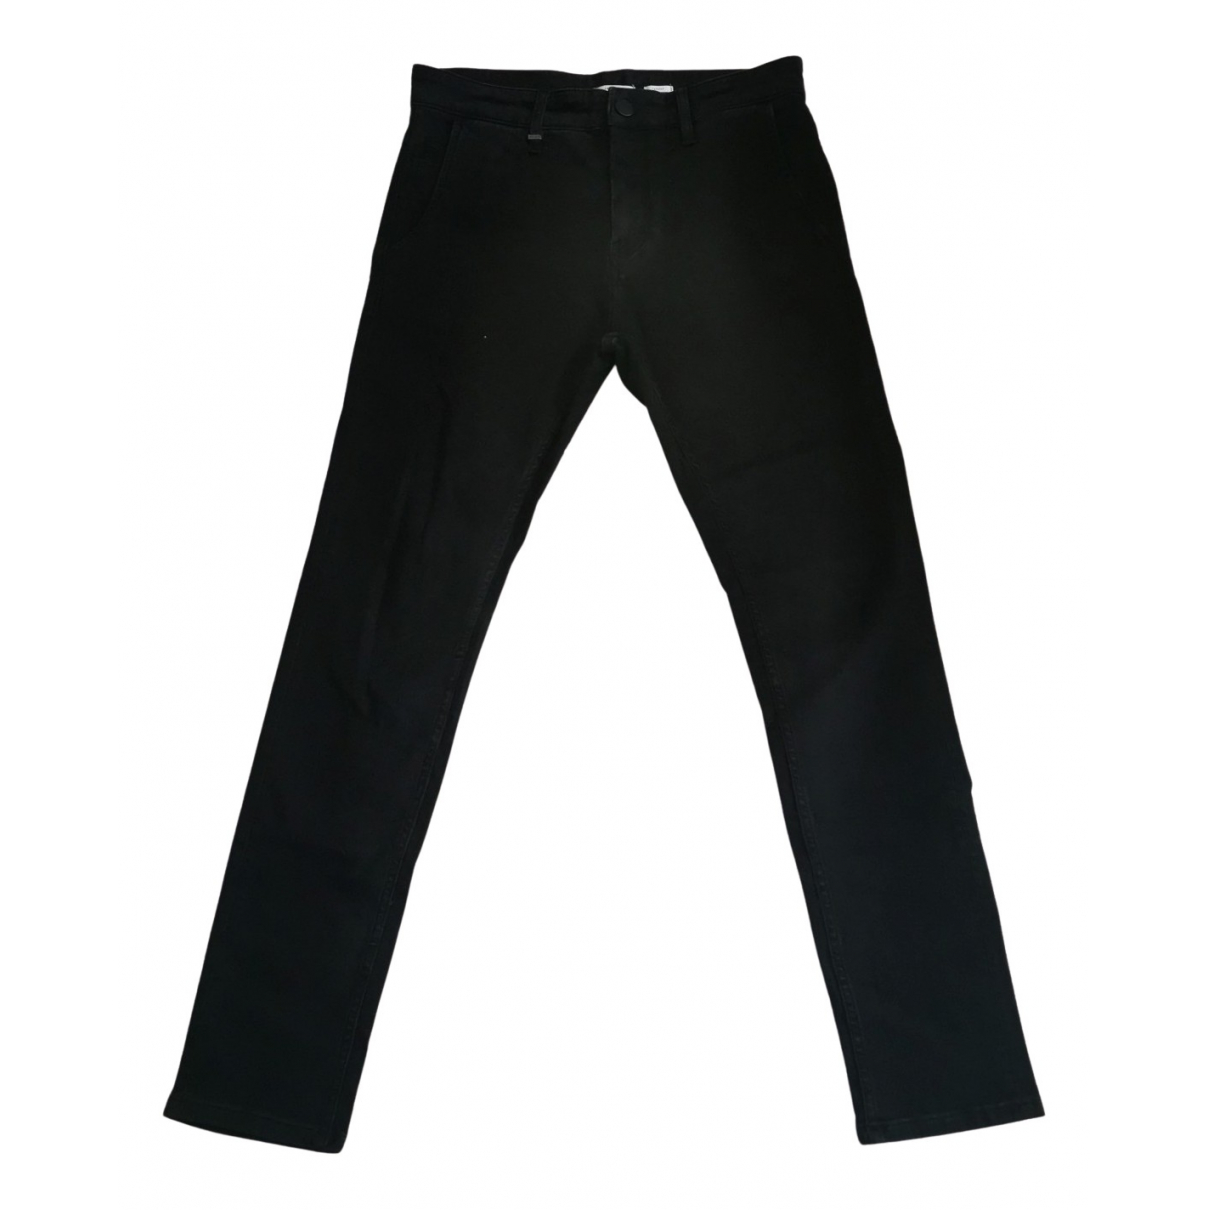 Ikks N Black Cotton Trousers for Men 28 UK - US